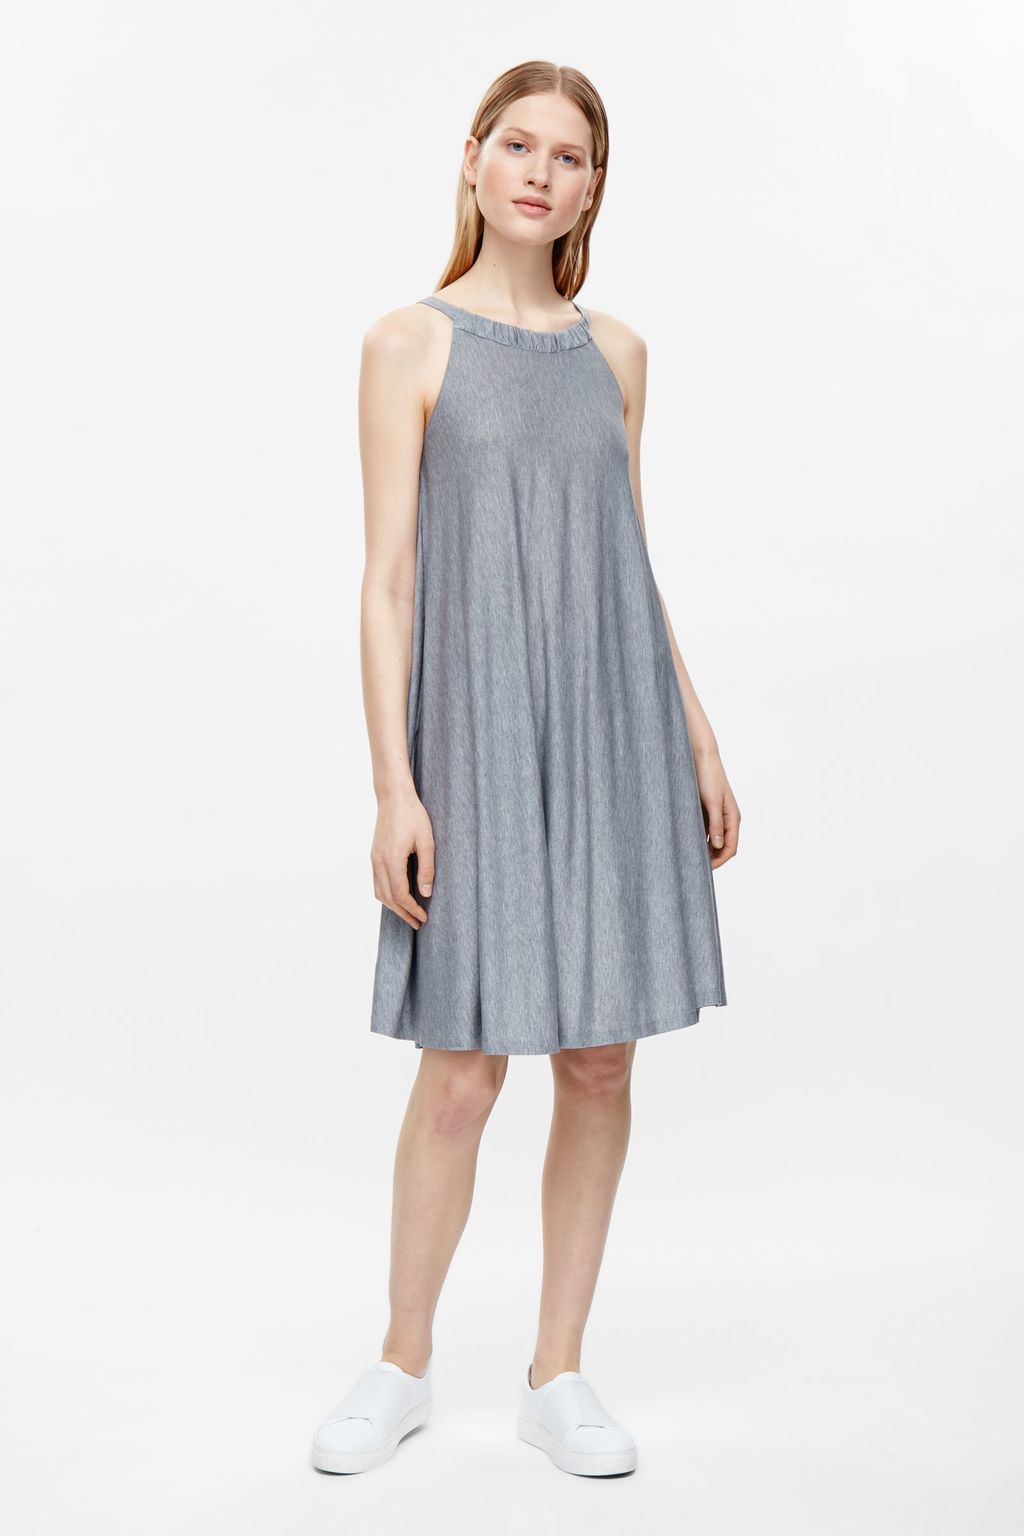 Dress With Drawstring Neck - style: smock; fit: loose; pattern: plain; sleeve style: sleeveless; predominant colour: mid grey; occasions: casual; length: on the knee; fibres: viscose/rayon - 100%; neckline: crew; sleeve length: sleeveless; pattern type: fabric; texture group: other - light to midweight; season: s/s 2016